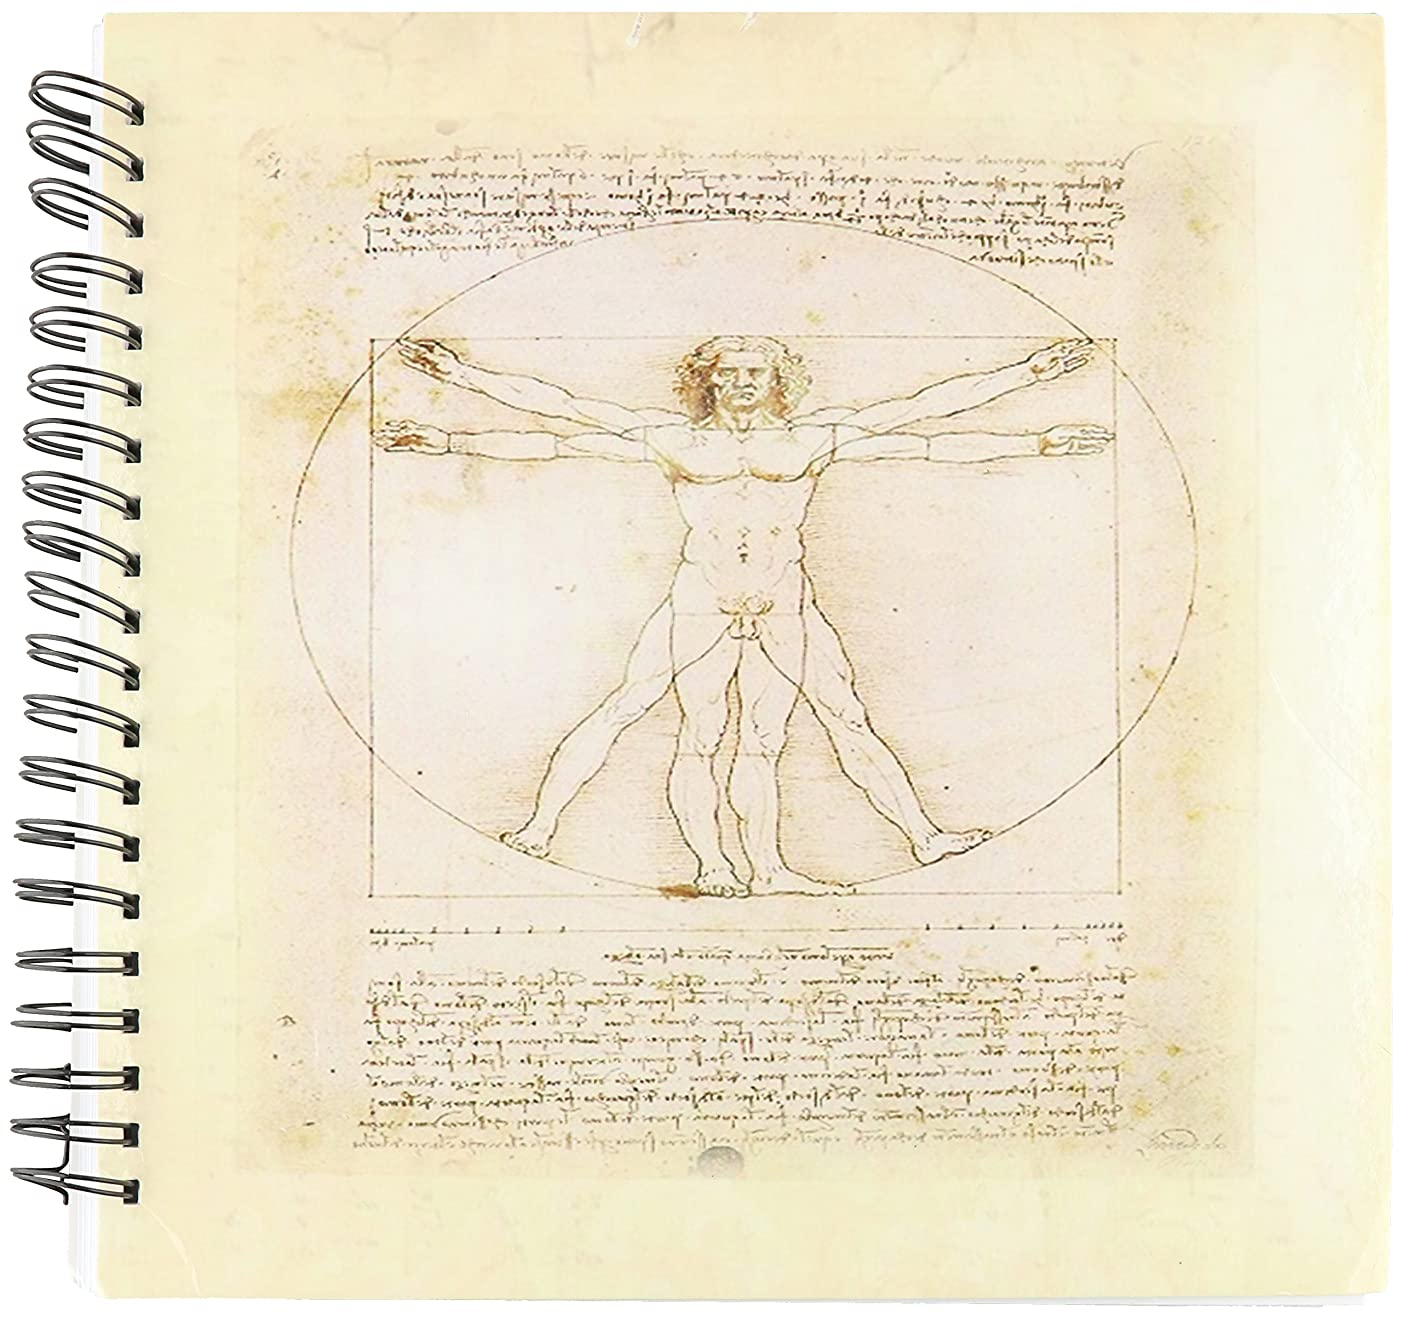 3dRose db_58513_2 Famous Davinci Drawing Memory Book, 12 by 12-Inch